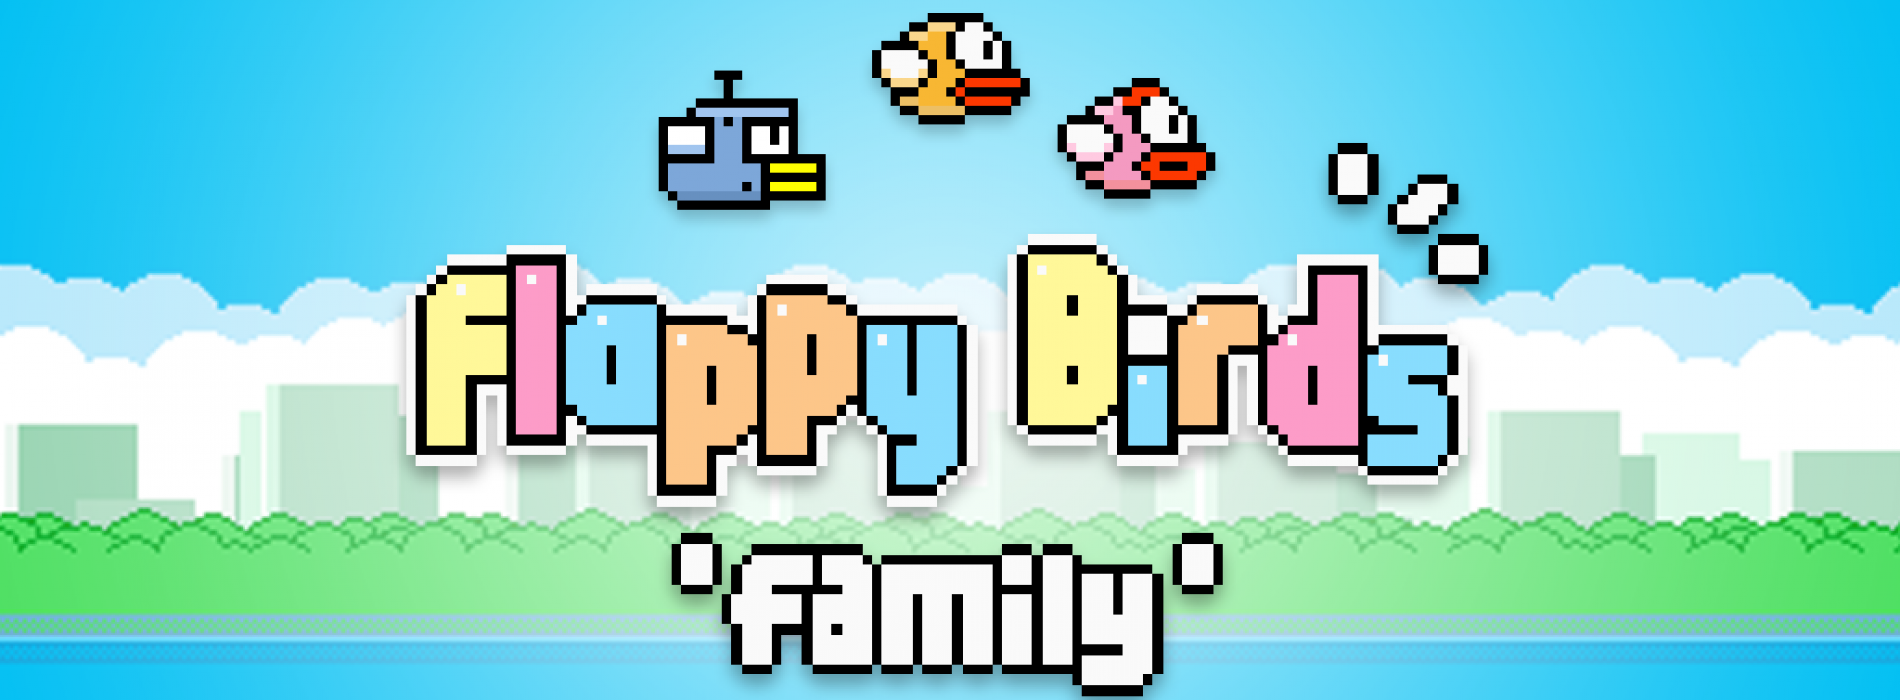 Flappy Bird returns in Amazon Fire TV exclusive 'Flappy Birds Family'